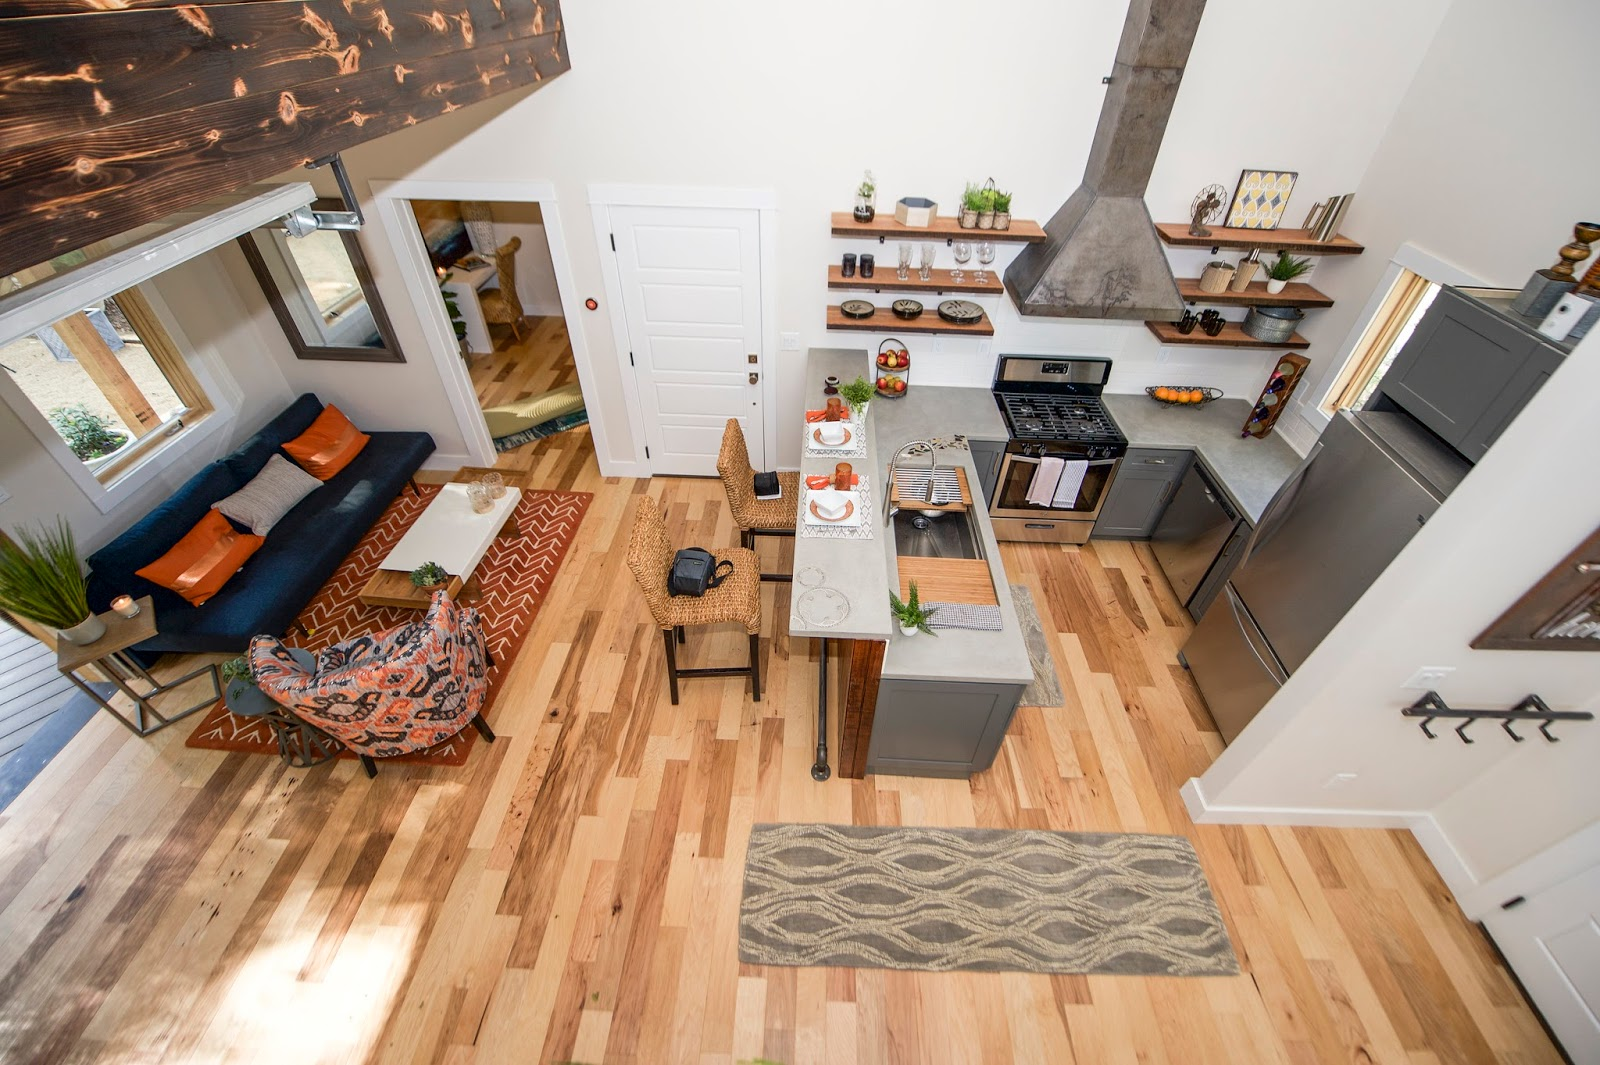 micro home. The kitchen features a concrete countertop by Set in Stone  custom steel stove top open shelving made from reclaimed beam wood and gallery workstation Little Living Blog Urban Micro Home